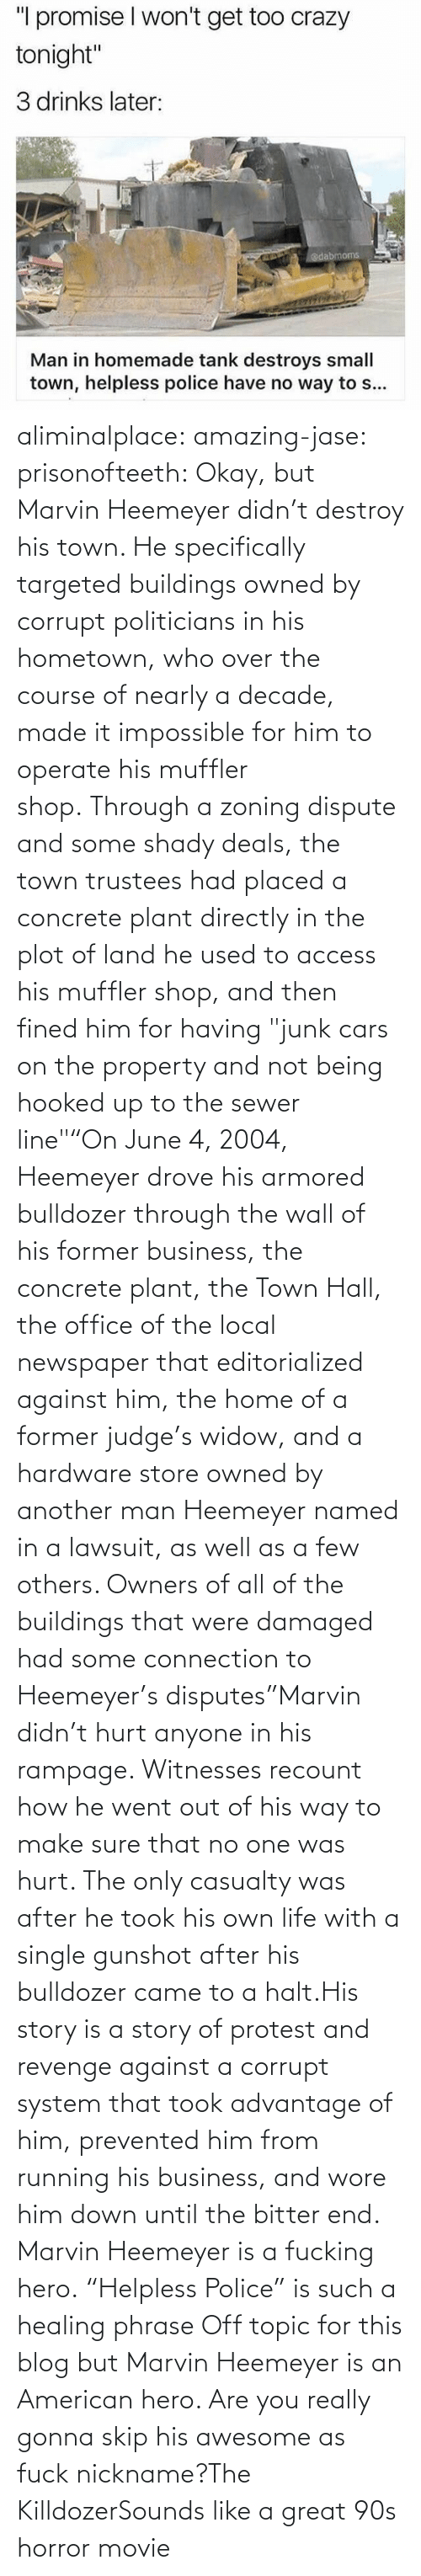 "Until: aliminalplace: amazing-jase:  prisonofteeth: Okay, but Marvin Heemeyer didn't destroy his town. He specifically targeted buildings owned by corrupt politicians in his hometown, who over the course of nearly a decade, made it impossible for him to operate his muffler shop. Through a zoning dispute and some shady deals, the town trustees had placed a concrete plant directly in the plot of land he used to access his muffler shop, and then fined him for having ""junk cars on the property and not being hooked up to the sewer line""""On June 4, 2004, Heemeyer drove his armored bulldozer through the wall of his former business, the concrete plant, the Town Hall, the office of the local newspaper that editorialized against him, the home of a former judge's widow, and a hardware store owned by another man Heemeyer named in a lawsuit, as well as a few others. Owners of all of the buildings that were damaged had some connection to Heemeyer's disputes""Marvin didn't hurt anyone in his rampage. Witnesses recount how he went out of his way to make sure that no one was hurt. The only casualty was after he took his own life with a single gunshot after his bulldozer came to a halt.His story is a story of protest and revenge against a corrupt system that took advantage of him, prevented him from running his business, and wore him down until the bitter end. Marvin Heemeyer is a fucking hero. ""Helpless Police"" is such a healing phrase    Off topic for this blog but Marvin Heemeyer is an American hero.     Are you really gonna skip his awesome as fuck nickname?The KilldozerSounds like a great 90s horror movie"